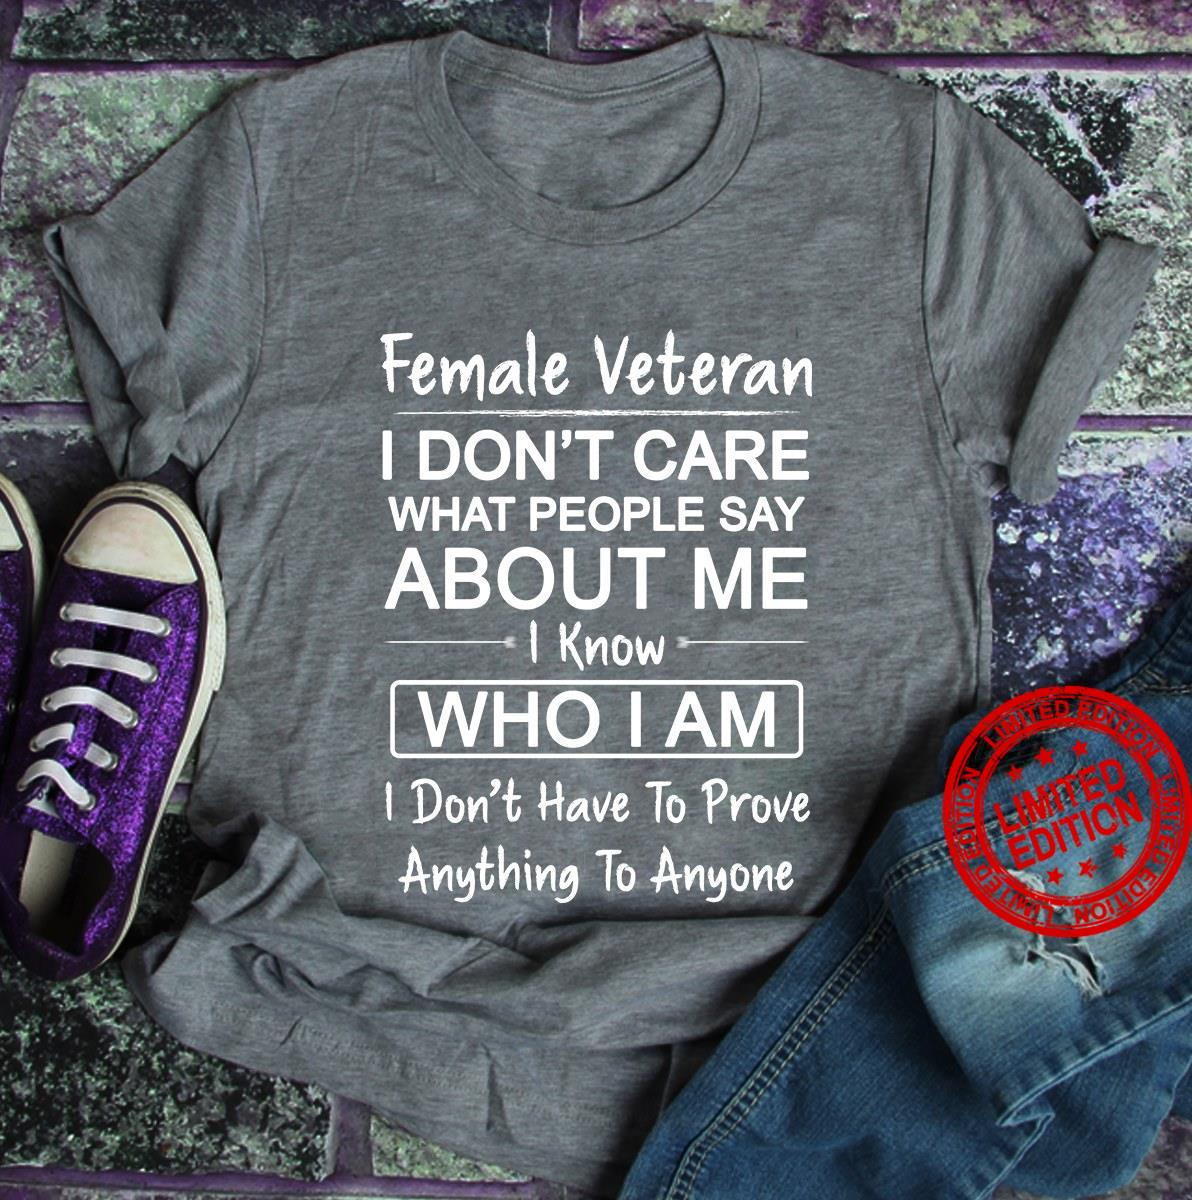 Female Veteran I Don't Care What People Say About Me I Know Who I Am Anything To Anyone Shirt